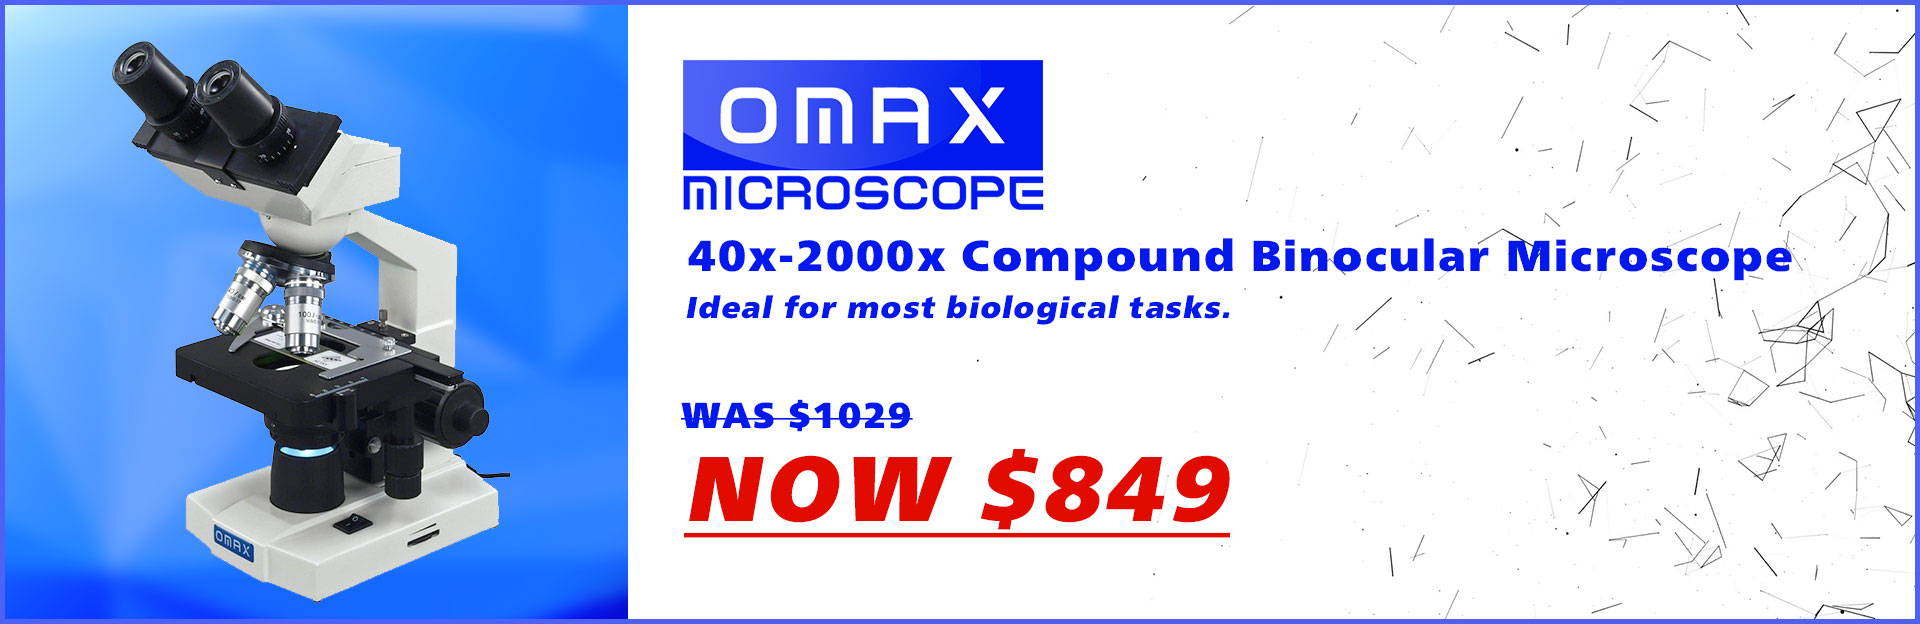 Omax binocular compound microscope